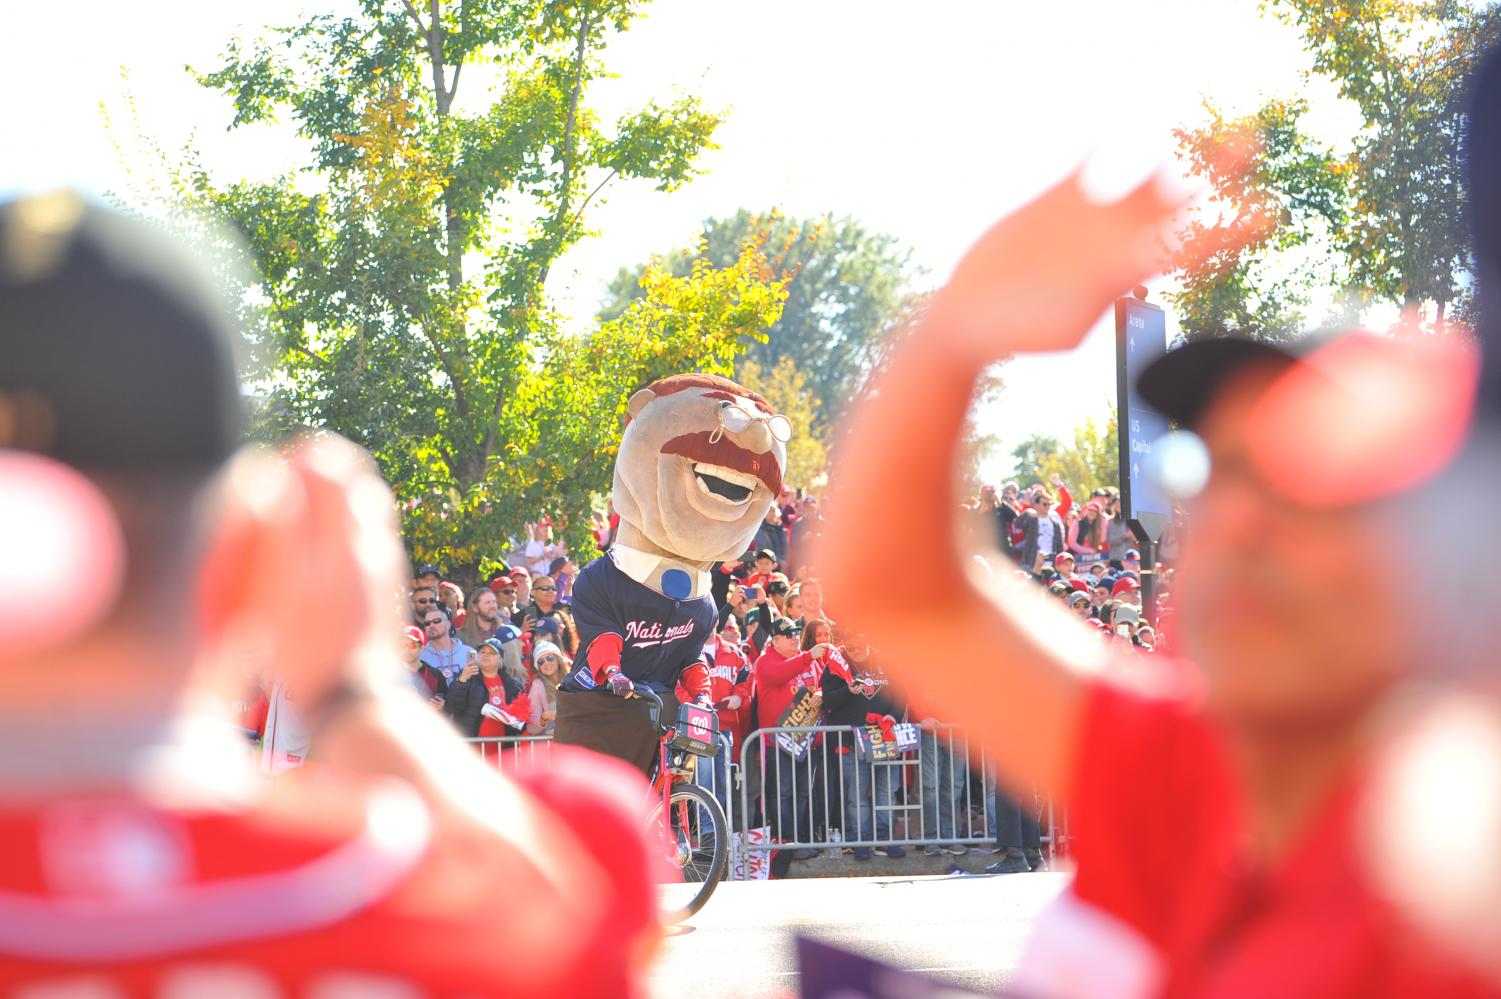 A+Theodore+%E2%80%9CTeddy%E2%80%9D+Roosevelt+mascot+rides+a+bike+during+the+Washington+Nationals+World+Series+parade+in+Washington+D.C.+on+Nov.+2.